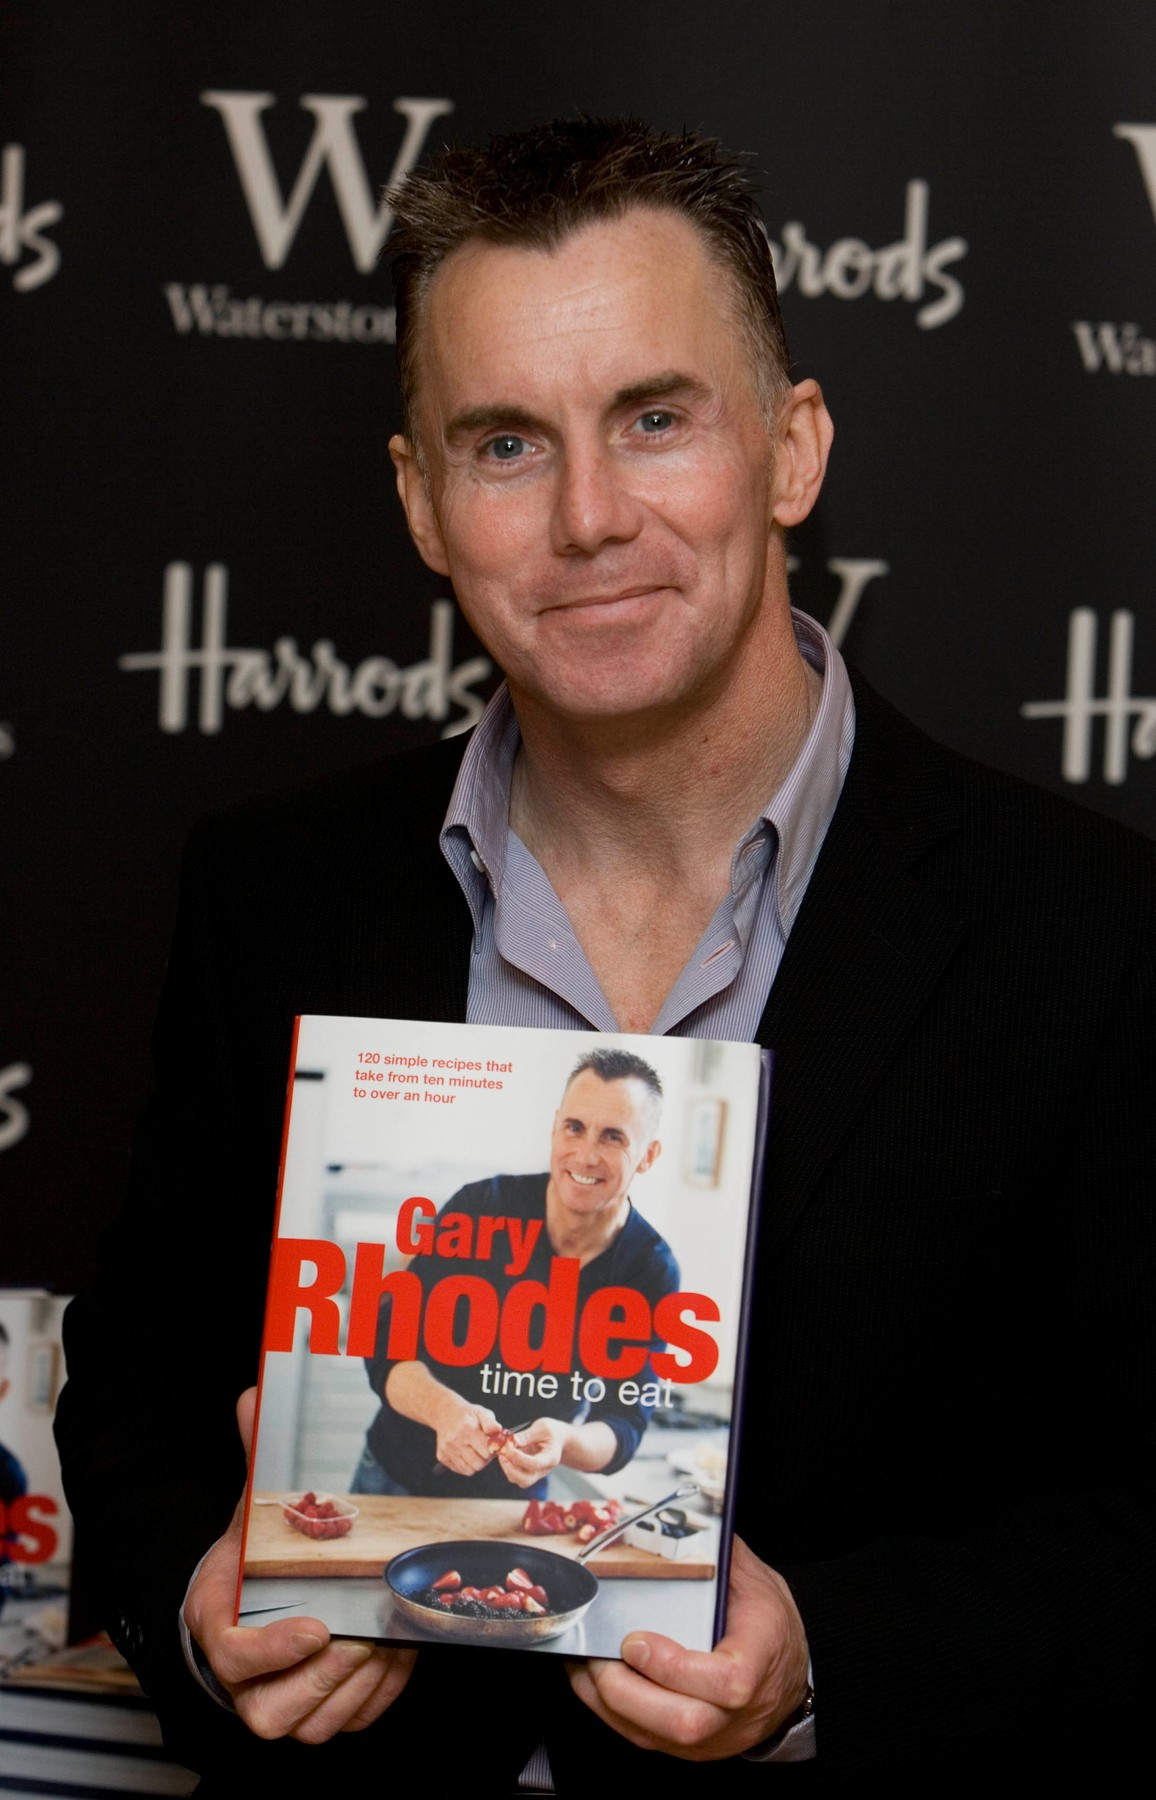 Celebrity chef, Gary Rhodes has passed away at the age of 59 in Dubai where he has lived for the past 8 years. His wife Jennie was by his side. Here stock image: 09/11/2007: TV chef signs Gary Rhodes signs copies of his new book 'Time To Eat' a guide to rustling up perfect meals in a short space of time. Waterstone's Harrods, London., Image: 485092177, License: Rights-managed, Restrictions: , Model Release: no, Credit line: GoffPhotos.com / Goff Photos / Profimedia